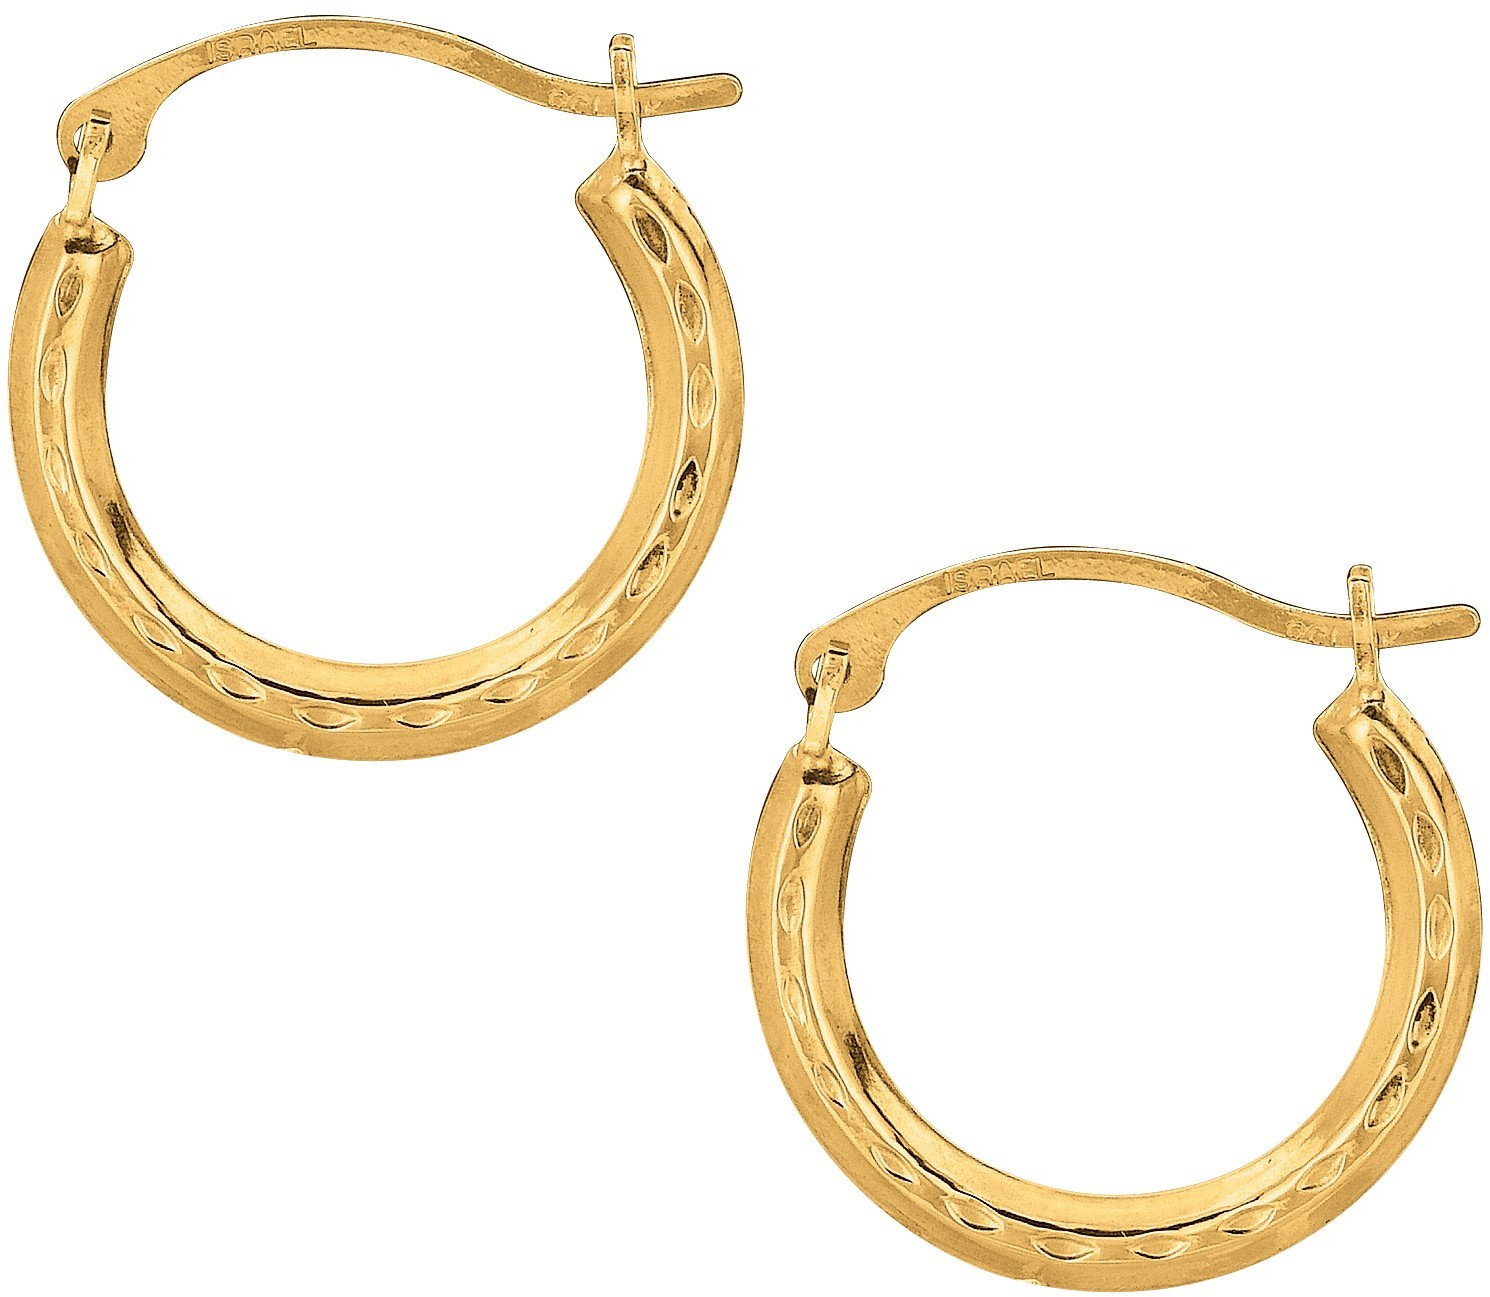 10K Yellow Gold Polished Textured Open Round Hoop Like Fancy Earrings